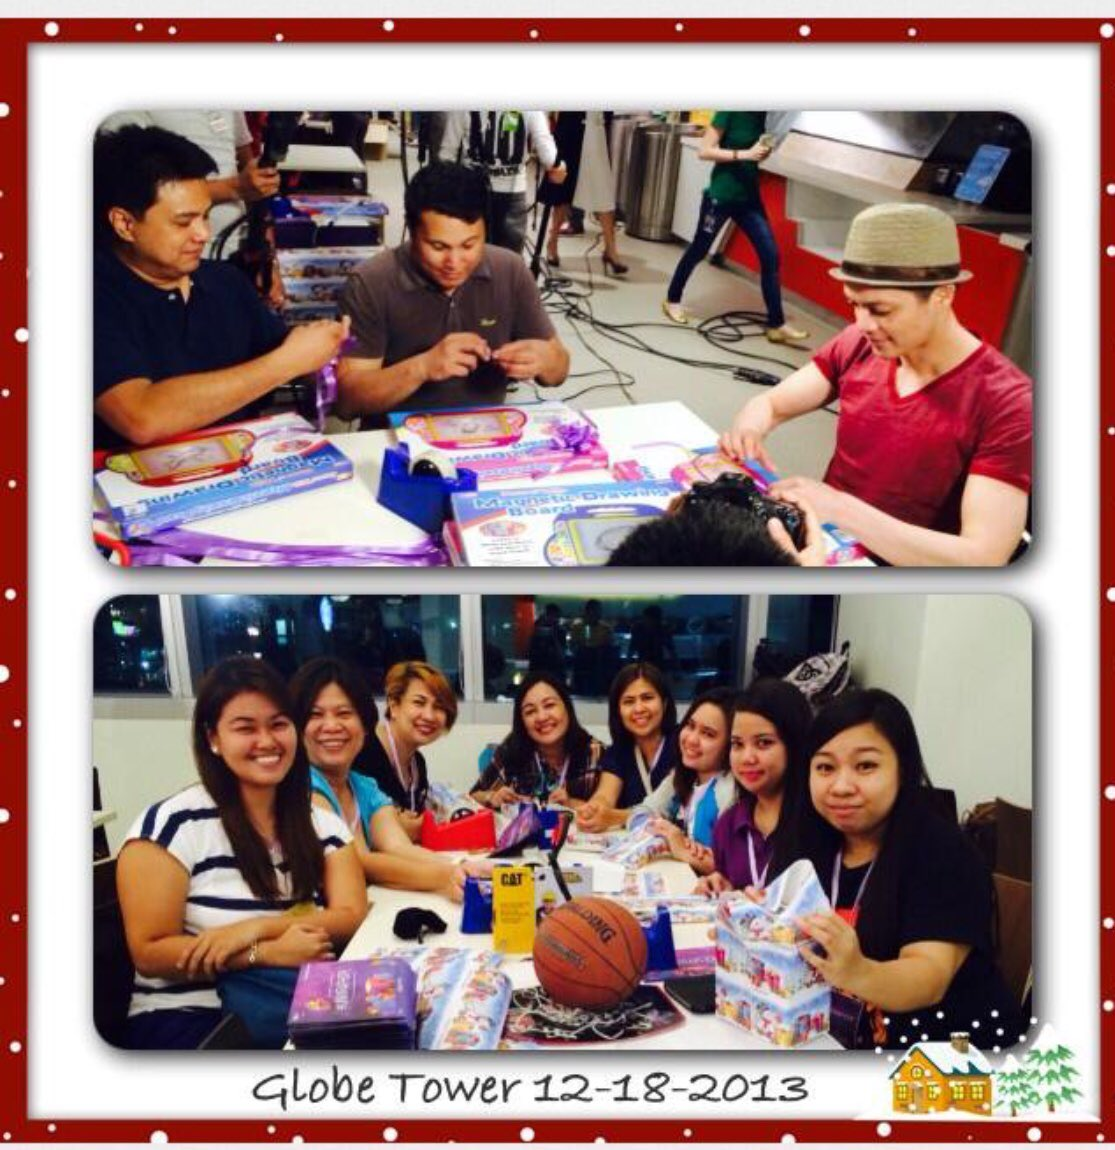 Happy 8th Anniversary @BMLFanatics #downmemorylane #throwback #Christmas gift wrapping with #KampKawayan family #BMLF @TeamPandaFamily with SirP , SirC and @Bamboomusiclive #letsdothisagain<br>http://pic.twitter.com/EGs2rfDWJT